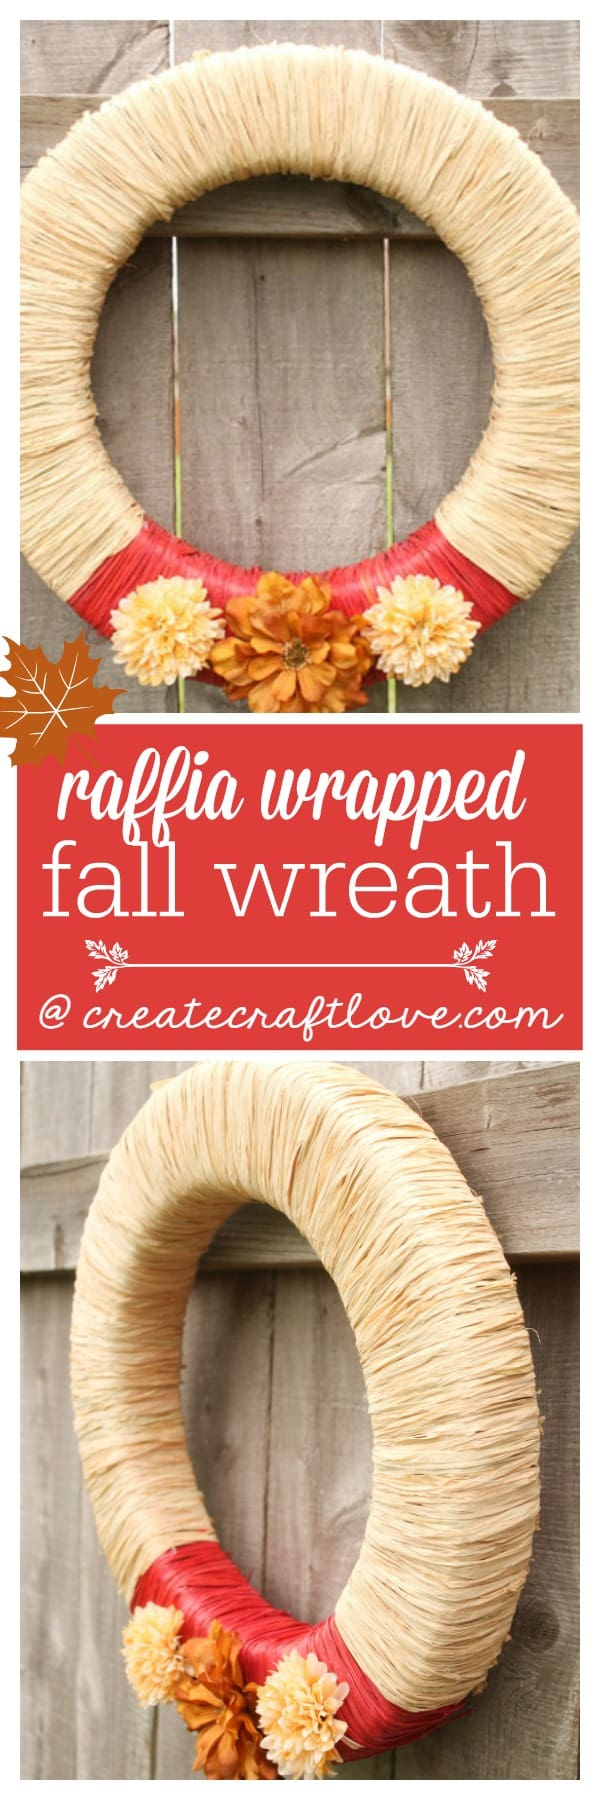 This Raffia Wrapped Fall Wreath is perfect for autumn!